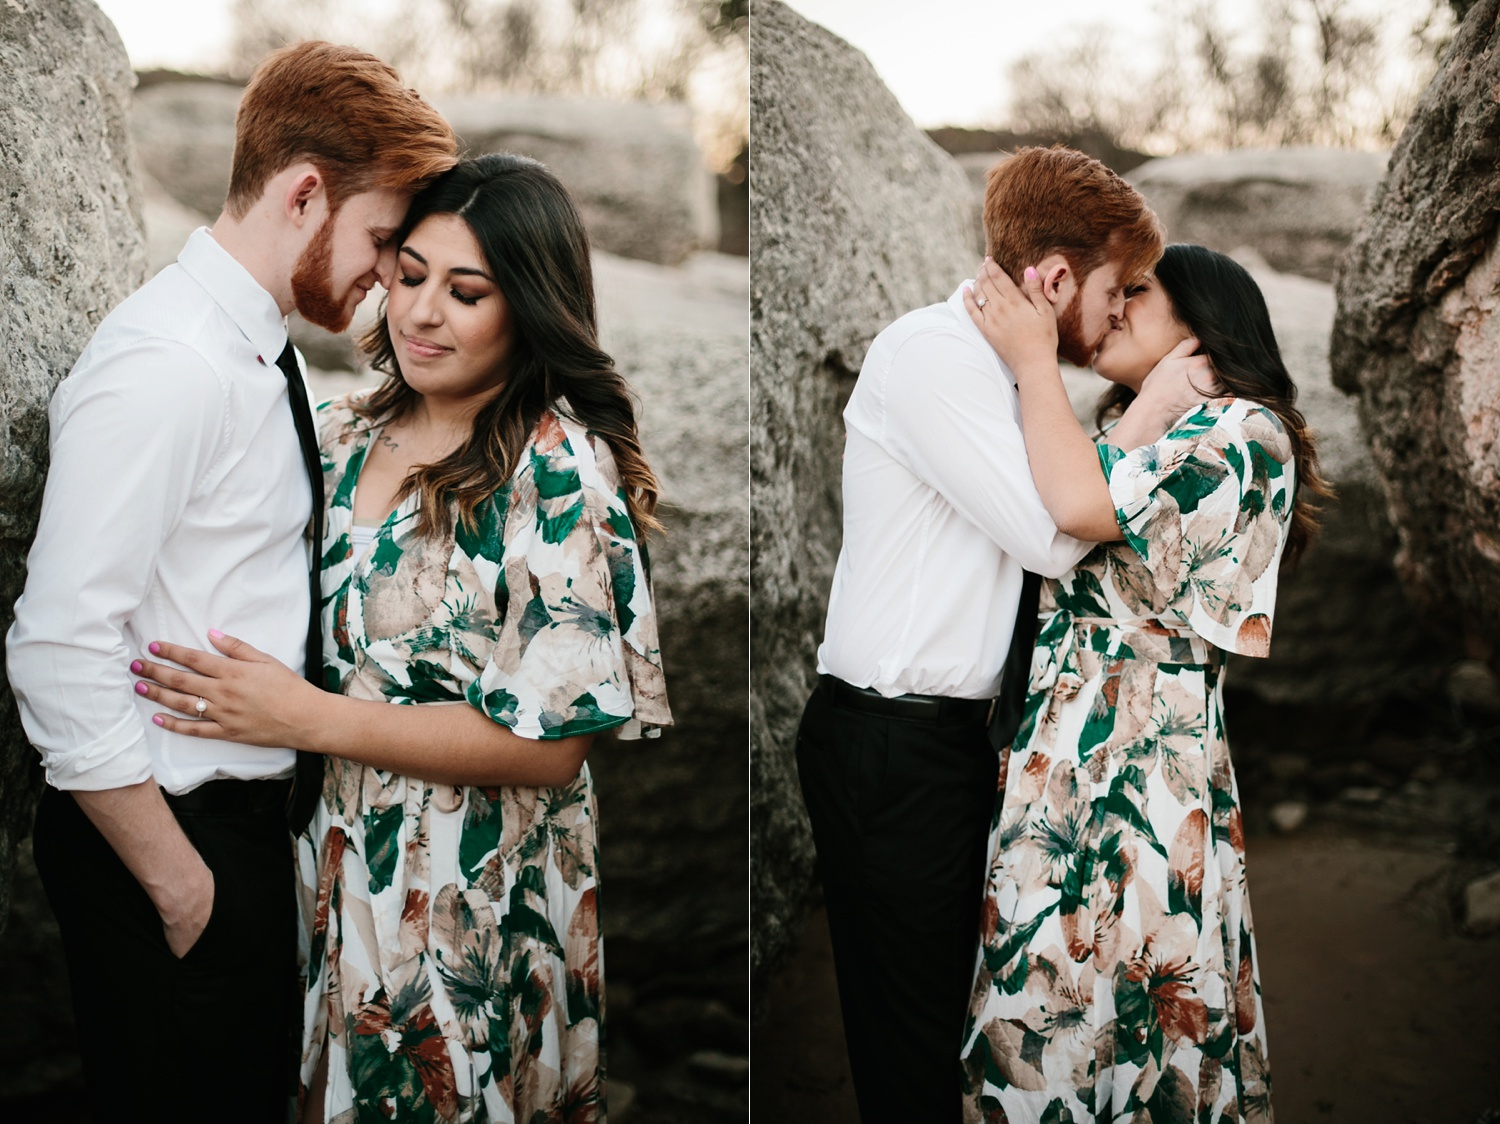 Grant + Lysette - floral dress engagement session by North Texas Wedding Photographer Rachel Meagan Photography098